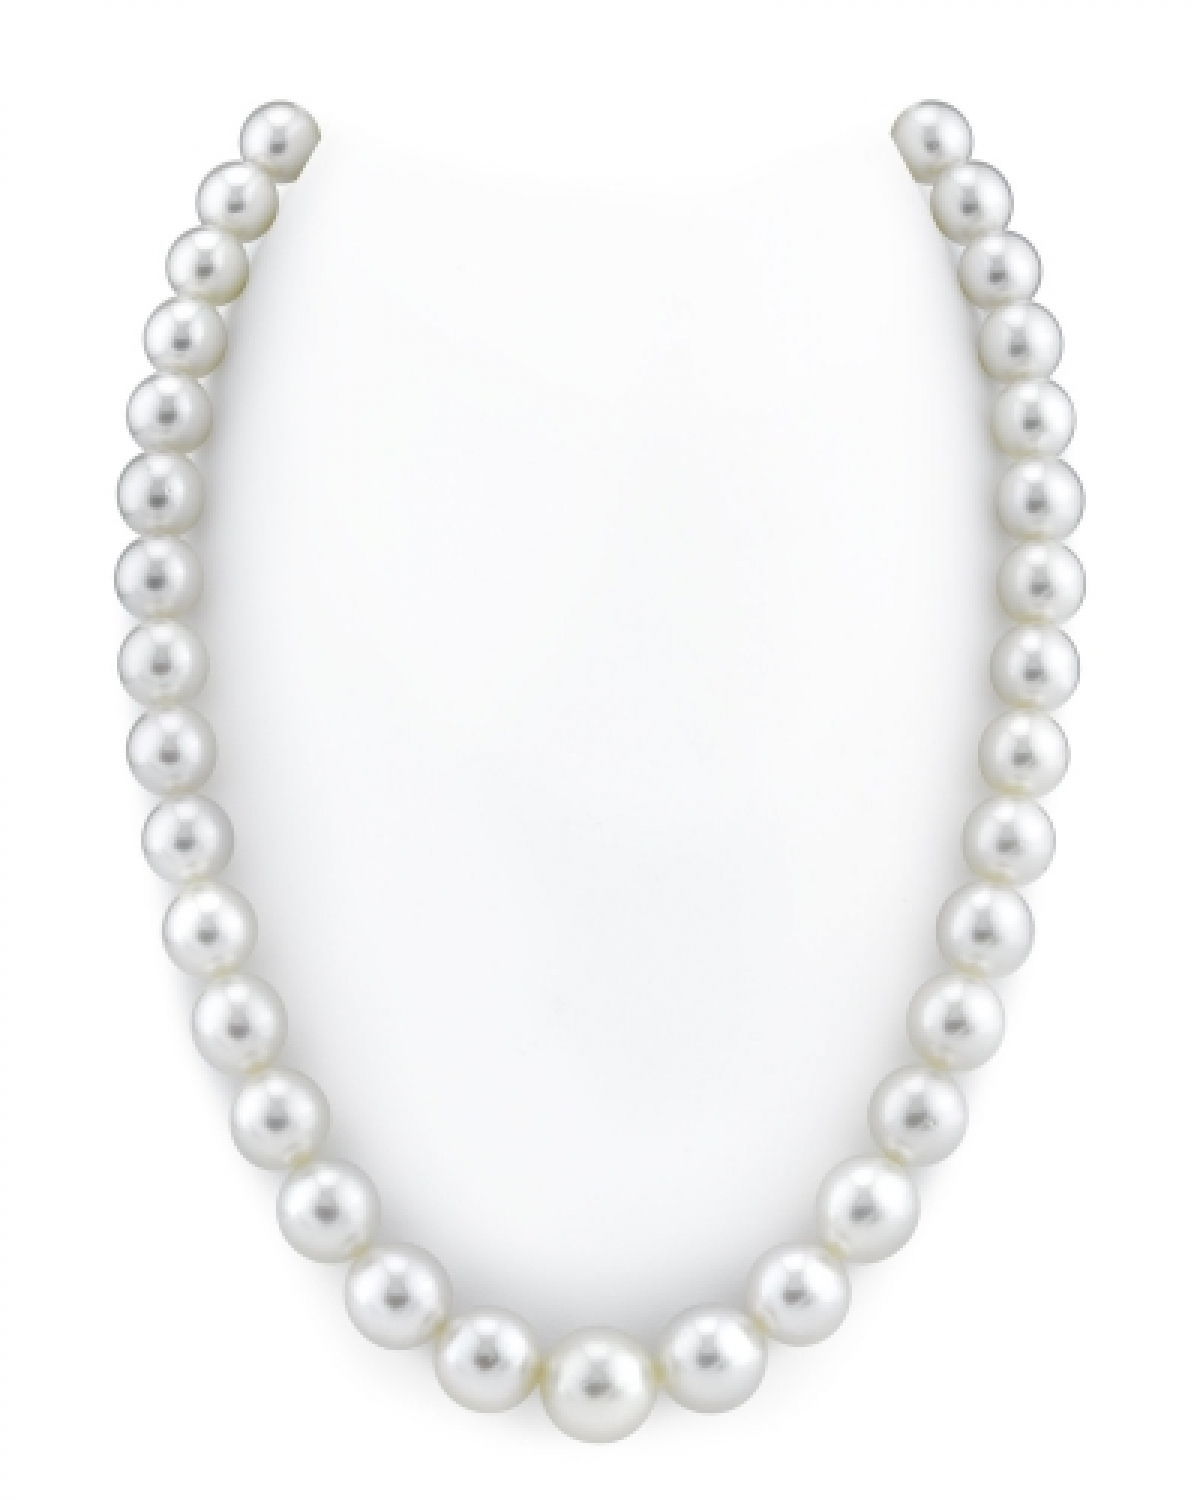 10-11mm White South Sea Pearl Necklace - AAAA Quality